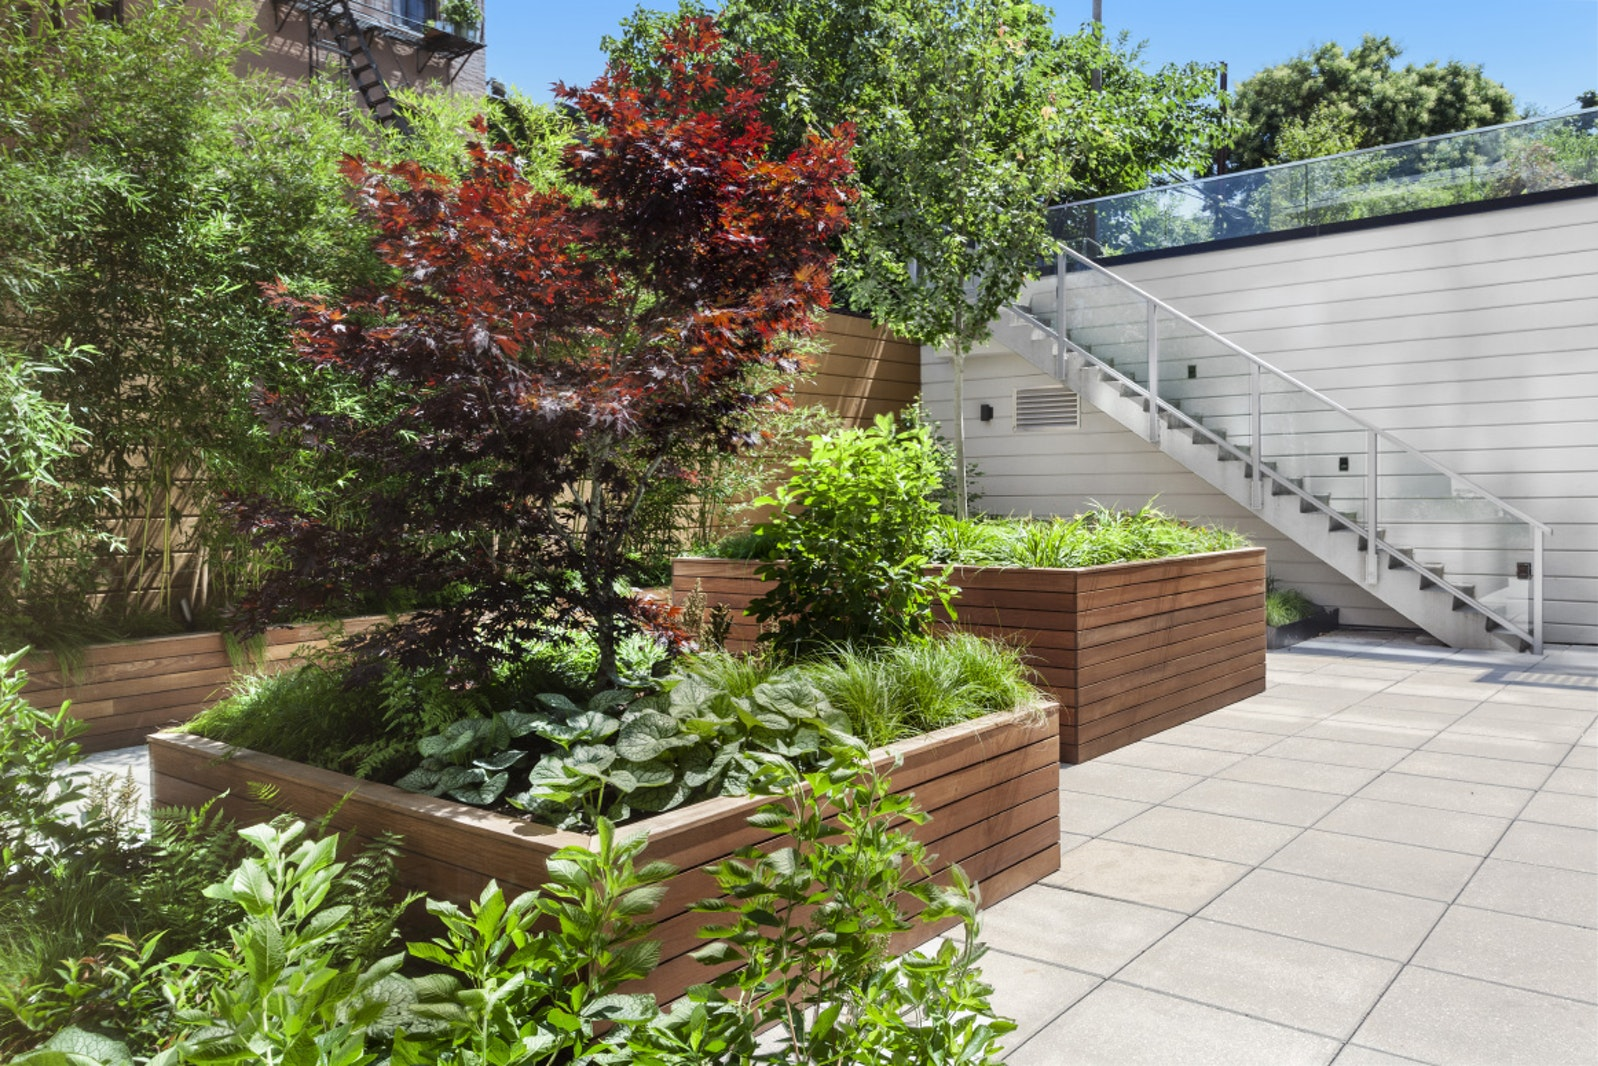 185 18th Street 101, Greenwood, Brooklyn, NY, 11215, $695,000, Property For Sale, Halstead Real Estate, Photo 8